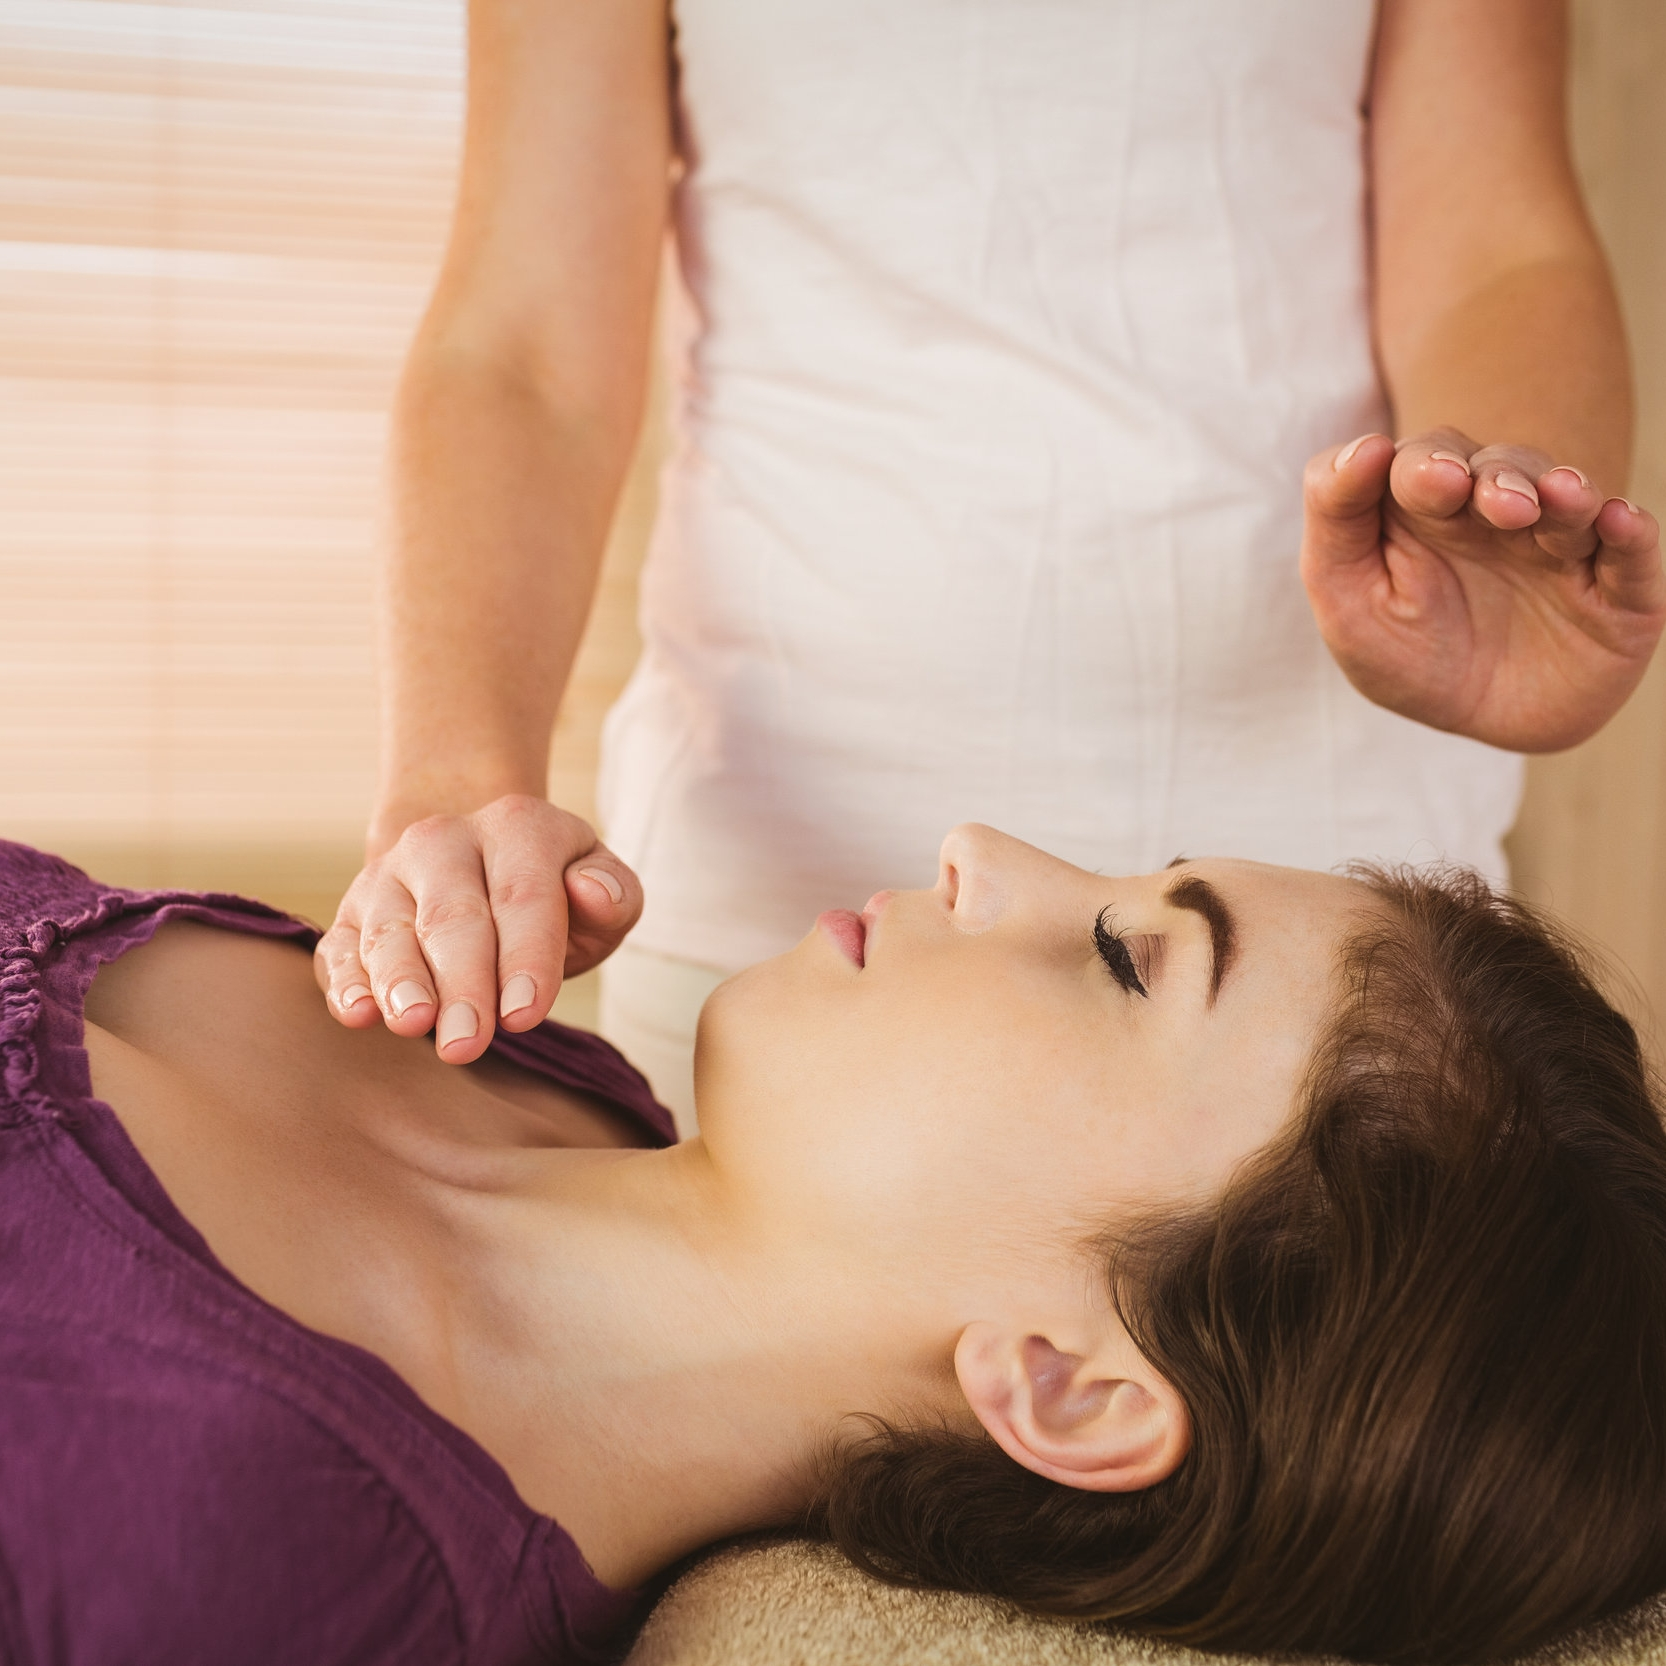 bigstock-Young-woman-having-a-reiki-tre-98065565.jpg